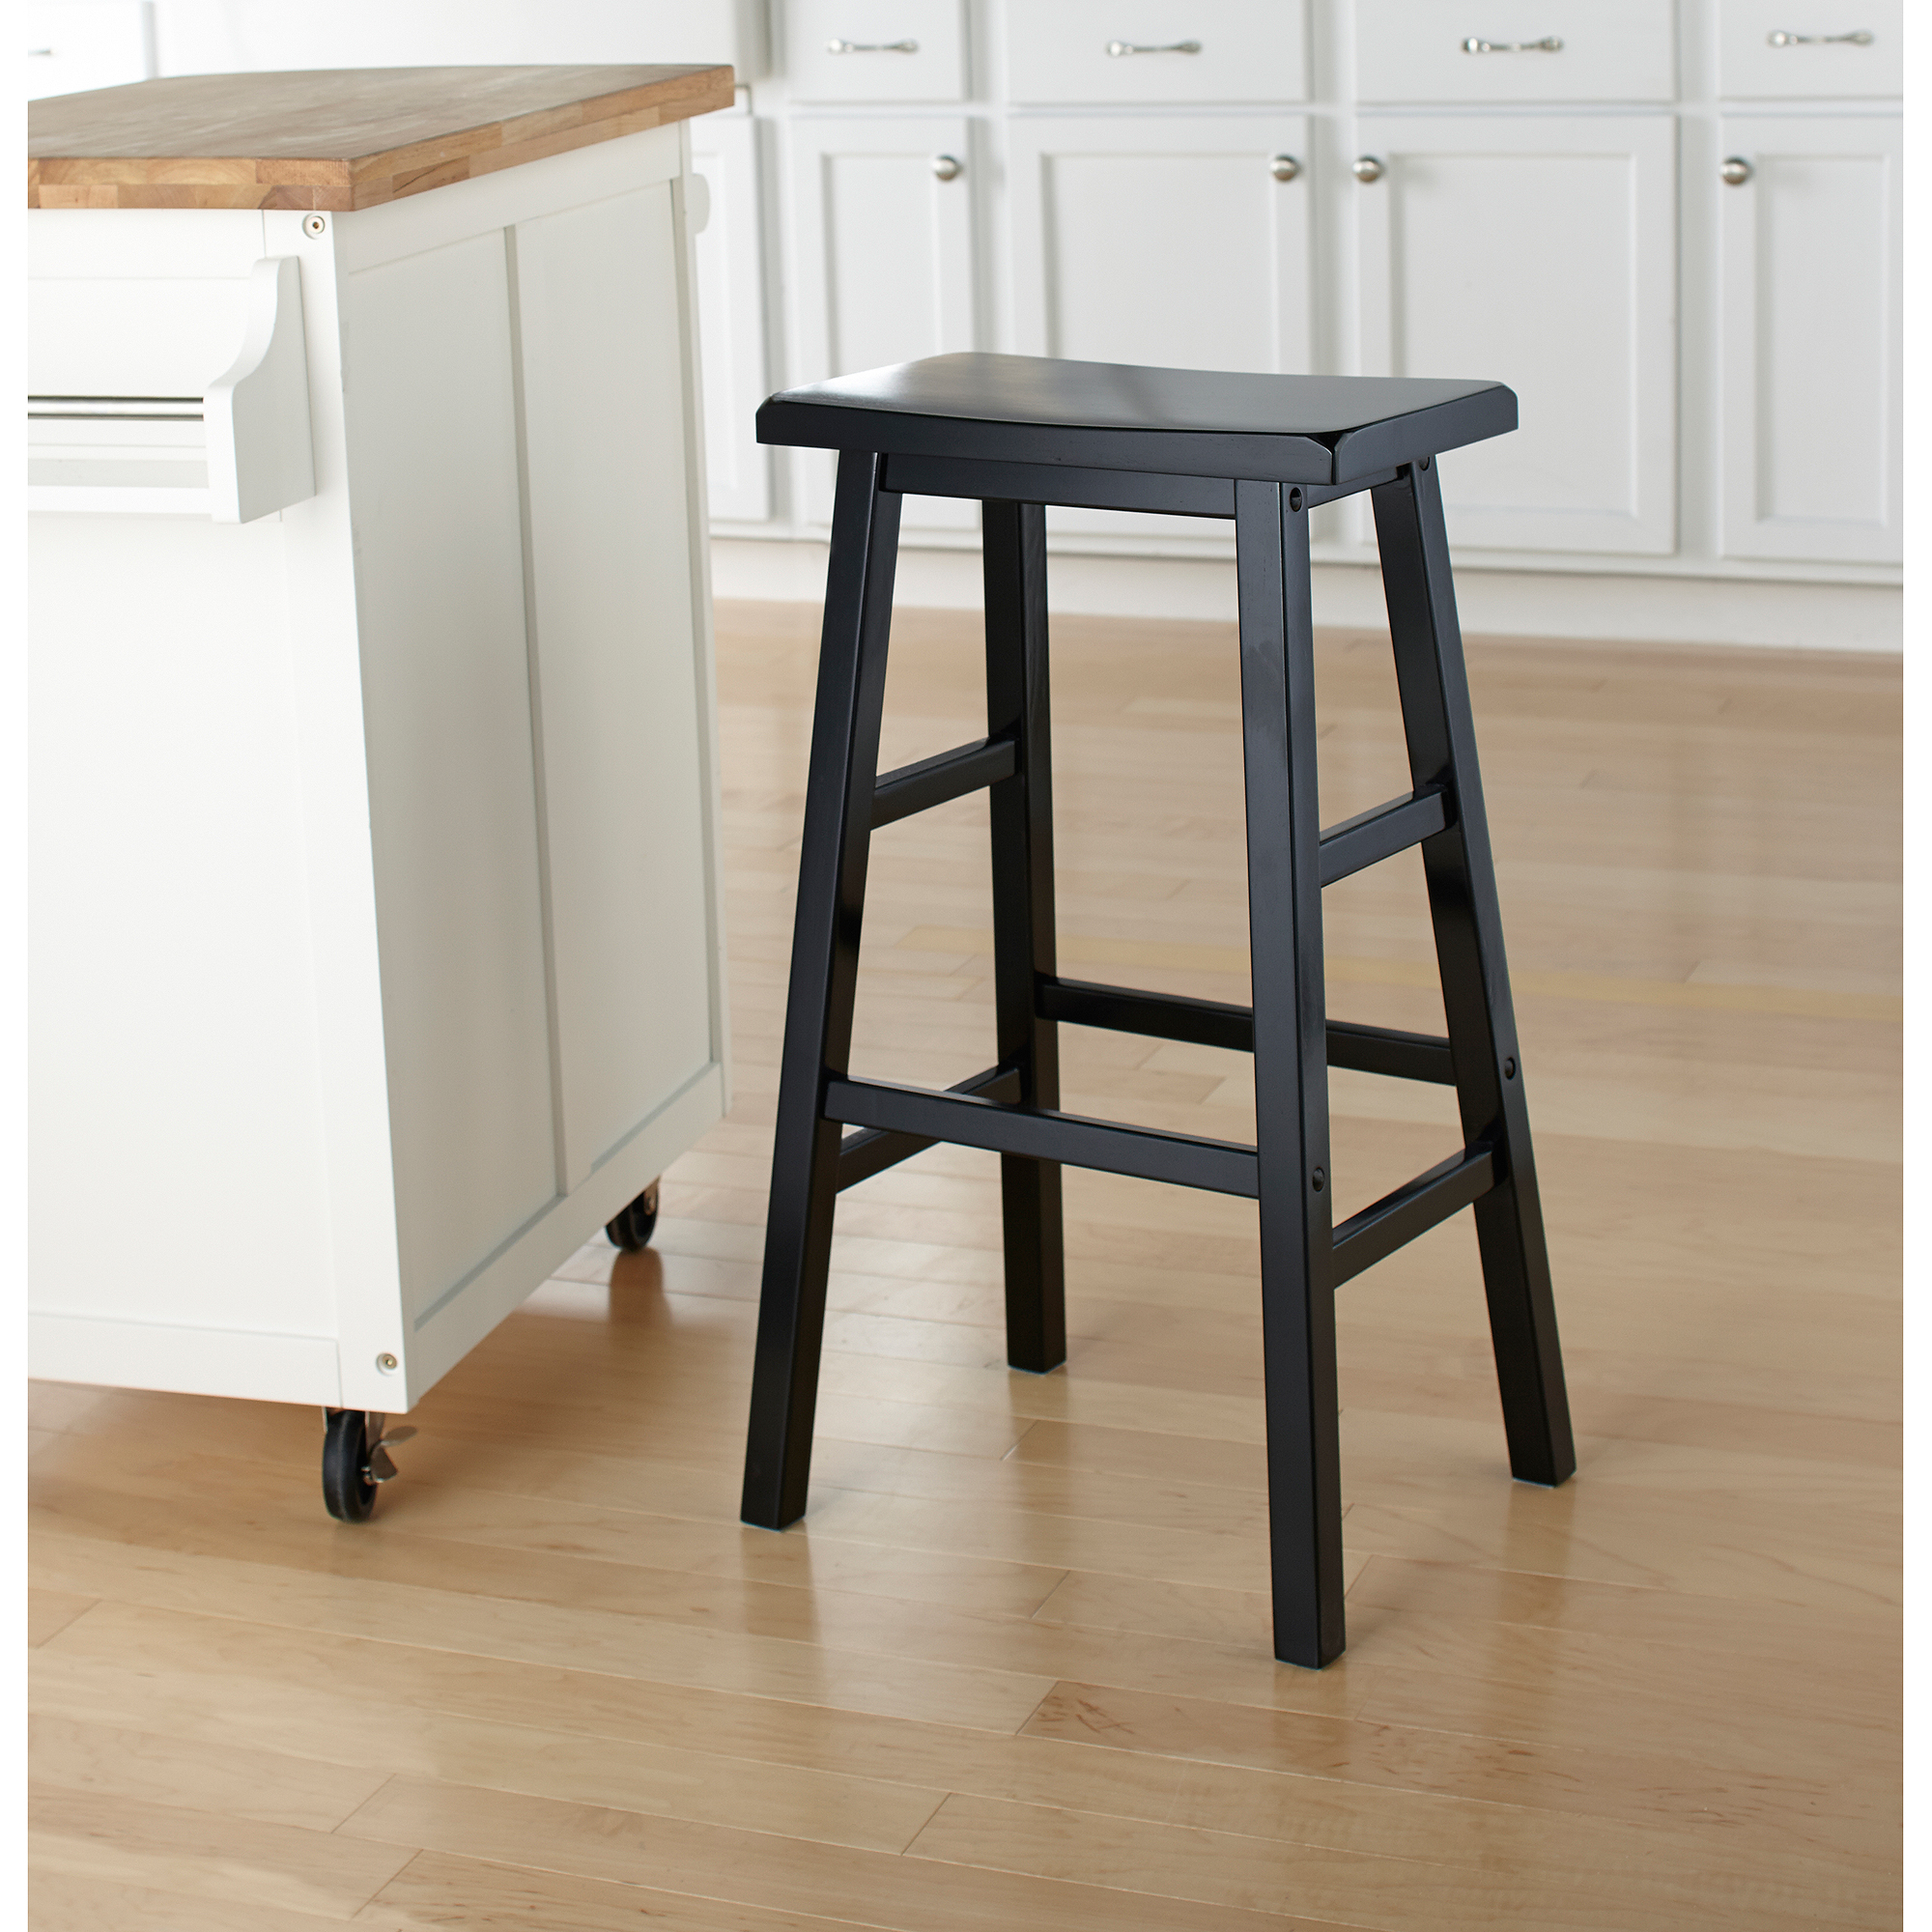 design stool v short saddle product cylinder styling en a lanvain